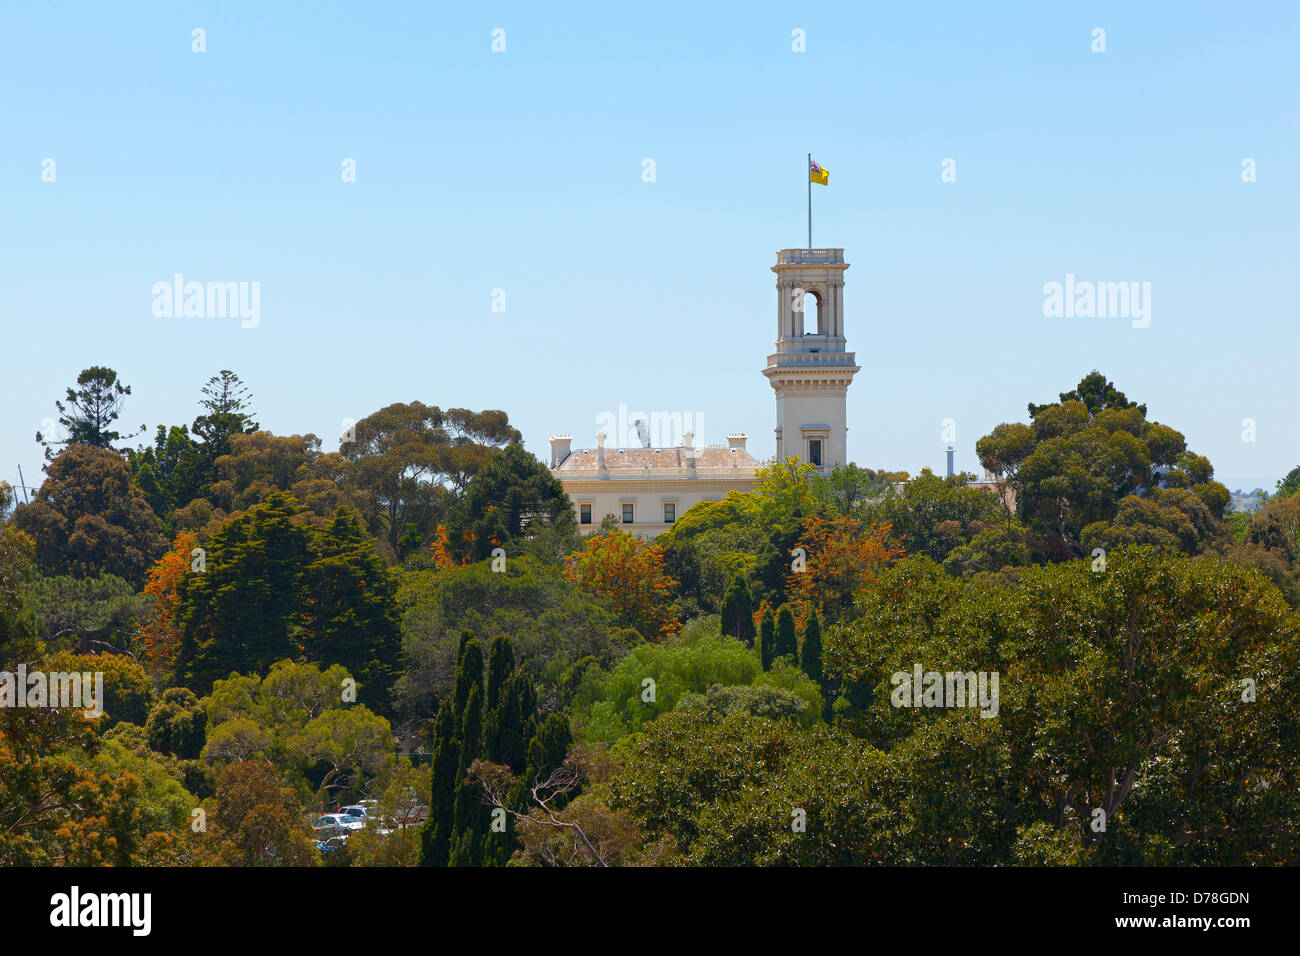 Government Hous and the Royal Botanic Gardens, Melbourne, Australia - Stock Image